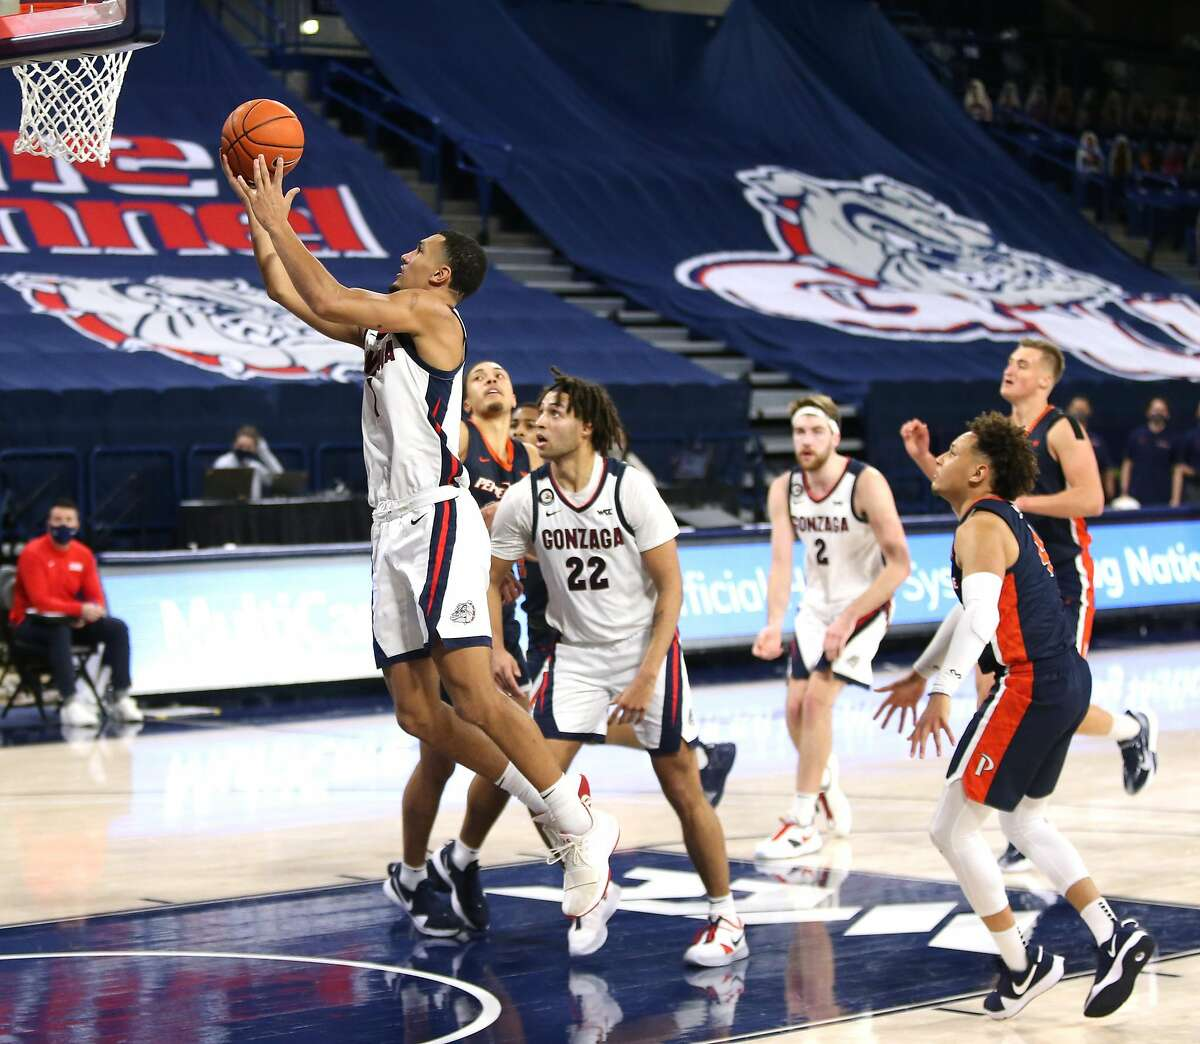 SPOKANE, WASHINGTON - JANUARY 14: Jalen Suggs #1 of the Gonzaga Bulldogs goes to the basket against the Pepperdine Waves in the second half at McCarthey Athletic Center on January 14, 2021 in Spokane, Washington. Gonzaga defeats Pepperdine 95-70. (Photo by William Mancebo/Getty Images)